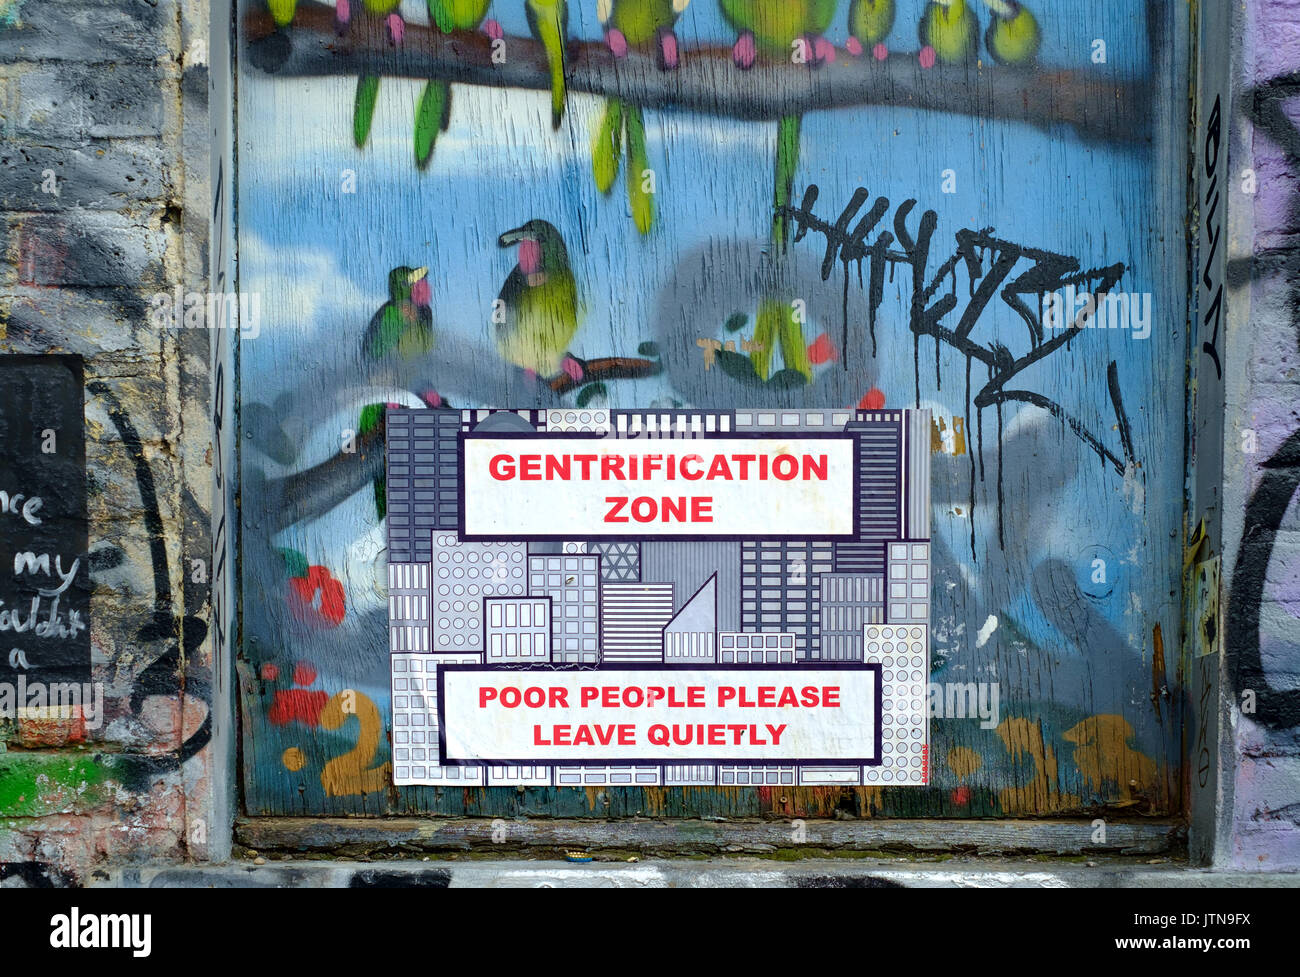 Protests against Gentrification on the wall of a derelict pub in Hackney Wick, East London, August 2017 - Stock Image